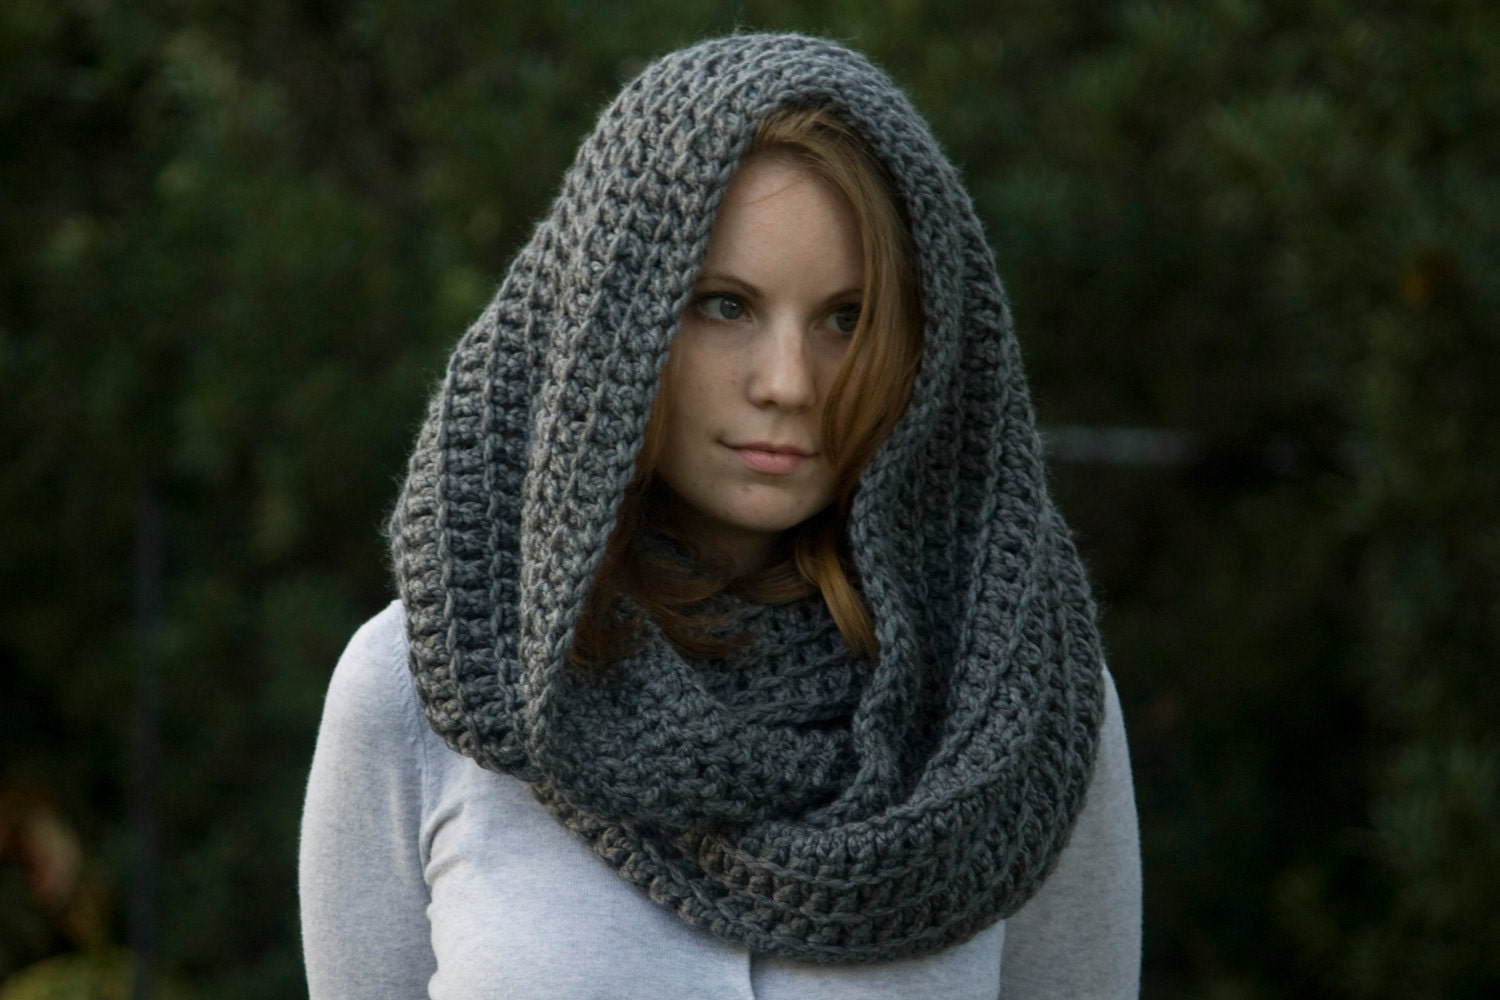 Crochet Pattern For Scarf Hood : CROCHET PATTERN Oversized Hooded Infinity Scarf Cowl